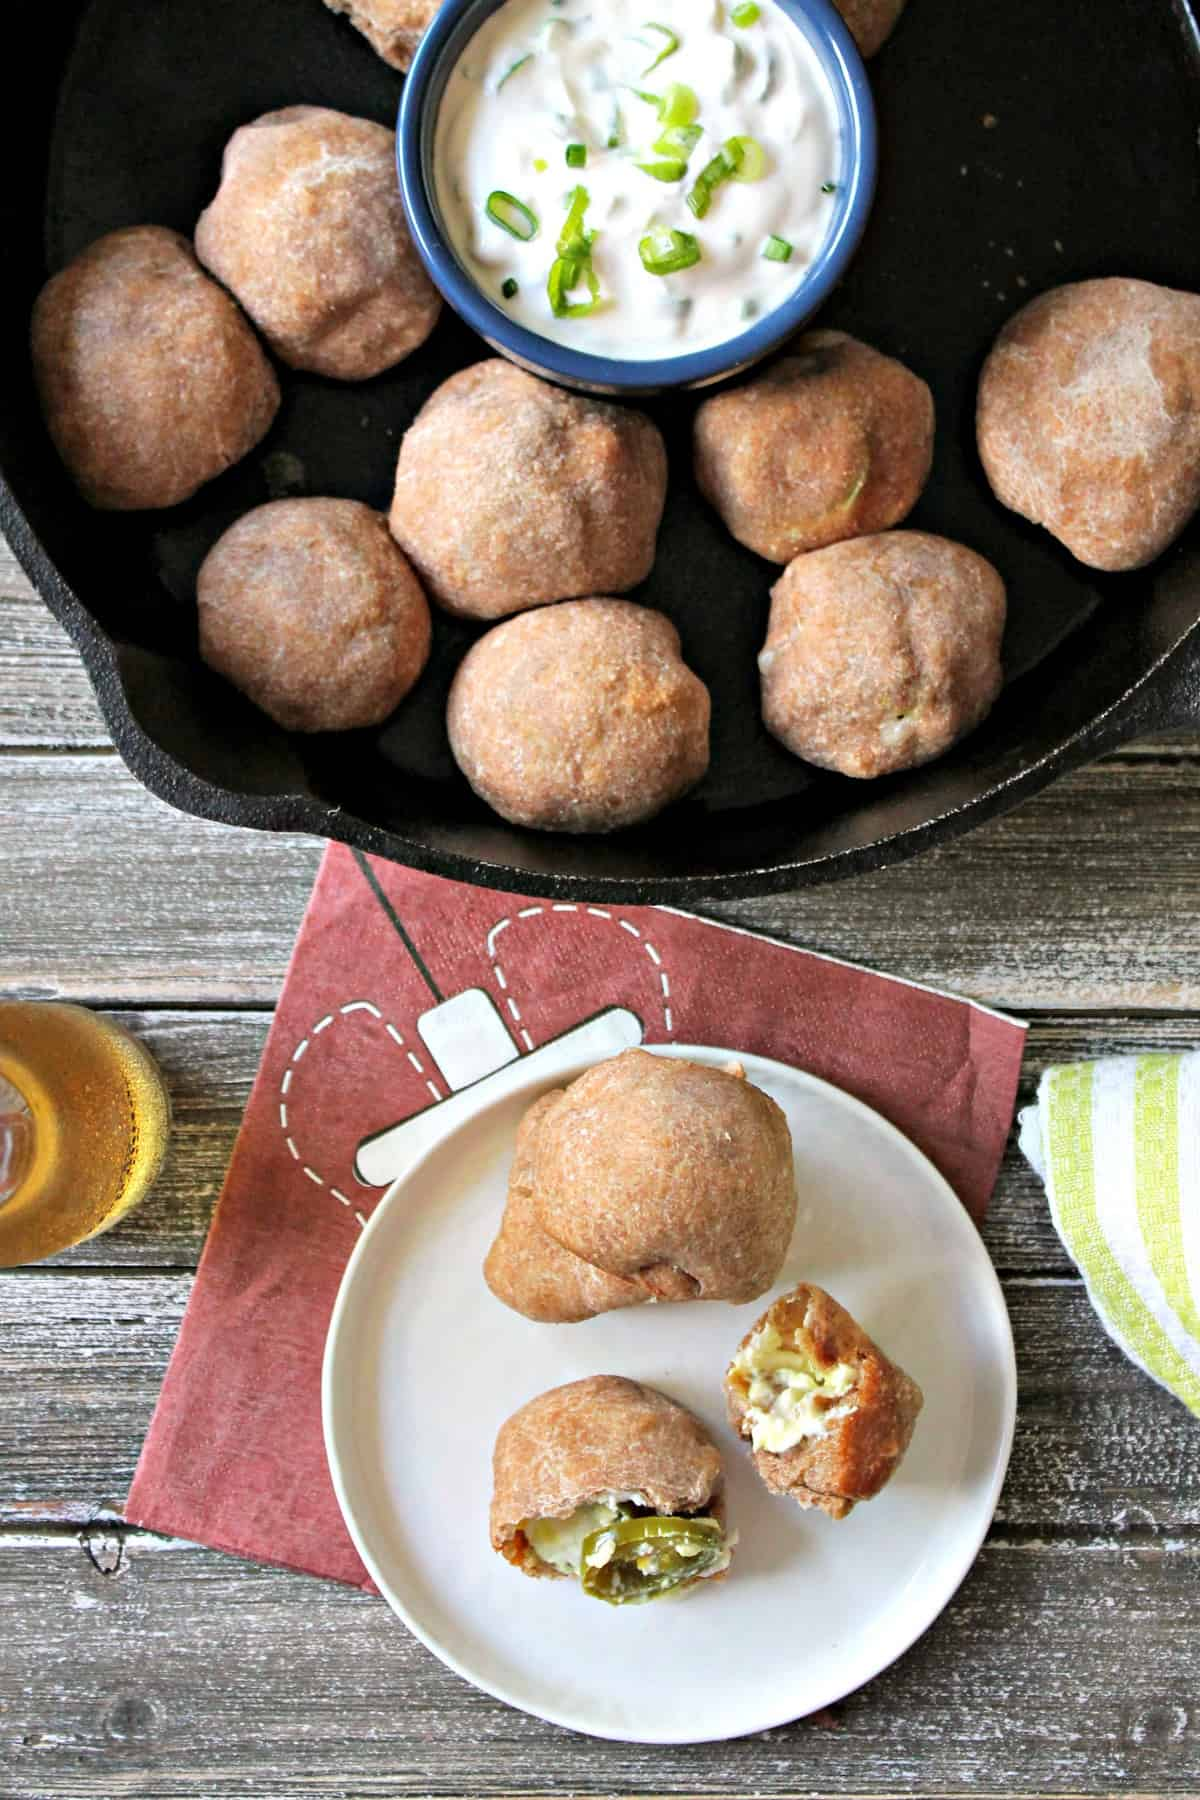 Easy Jalapeño Popper Bombs! Just 5 ingredients are all it takes to wow the crowd with these spicy, cheesy bites that make an excellent game day appetizer.